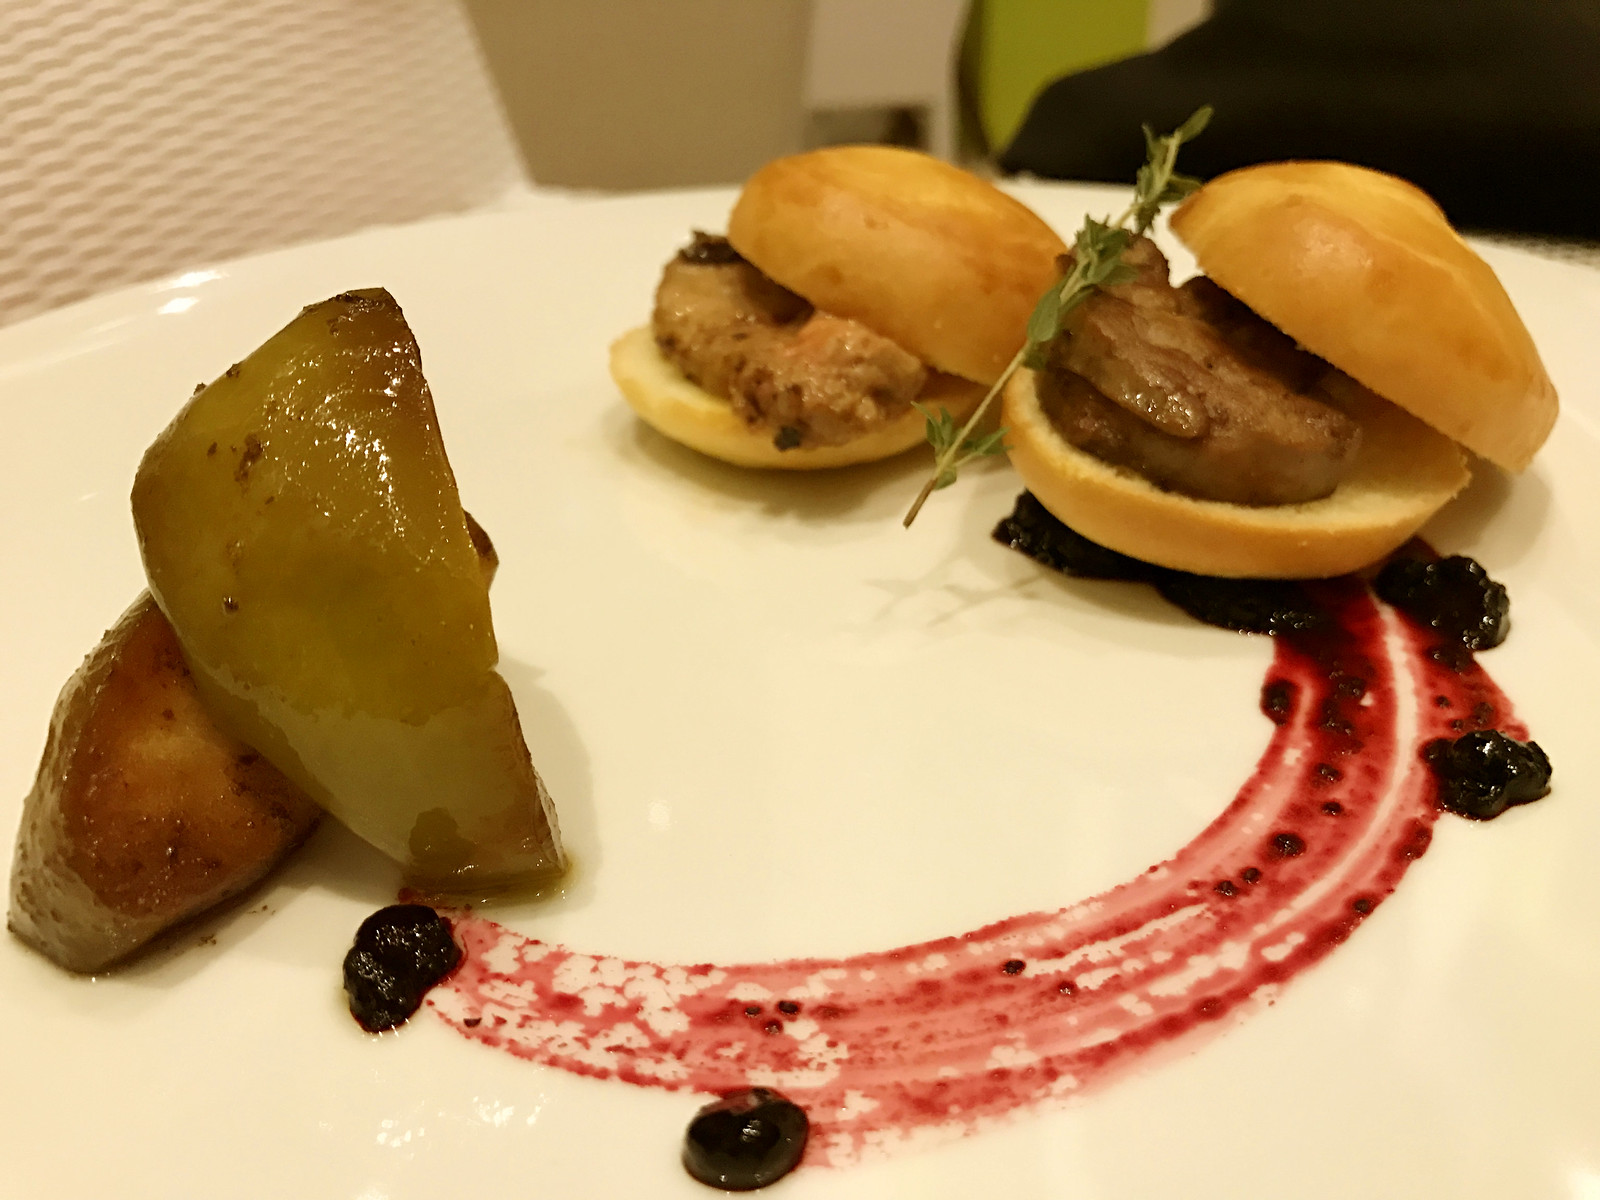 Main Restaurant - Foie Gras and sauteed apples